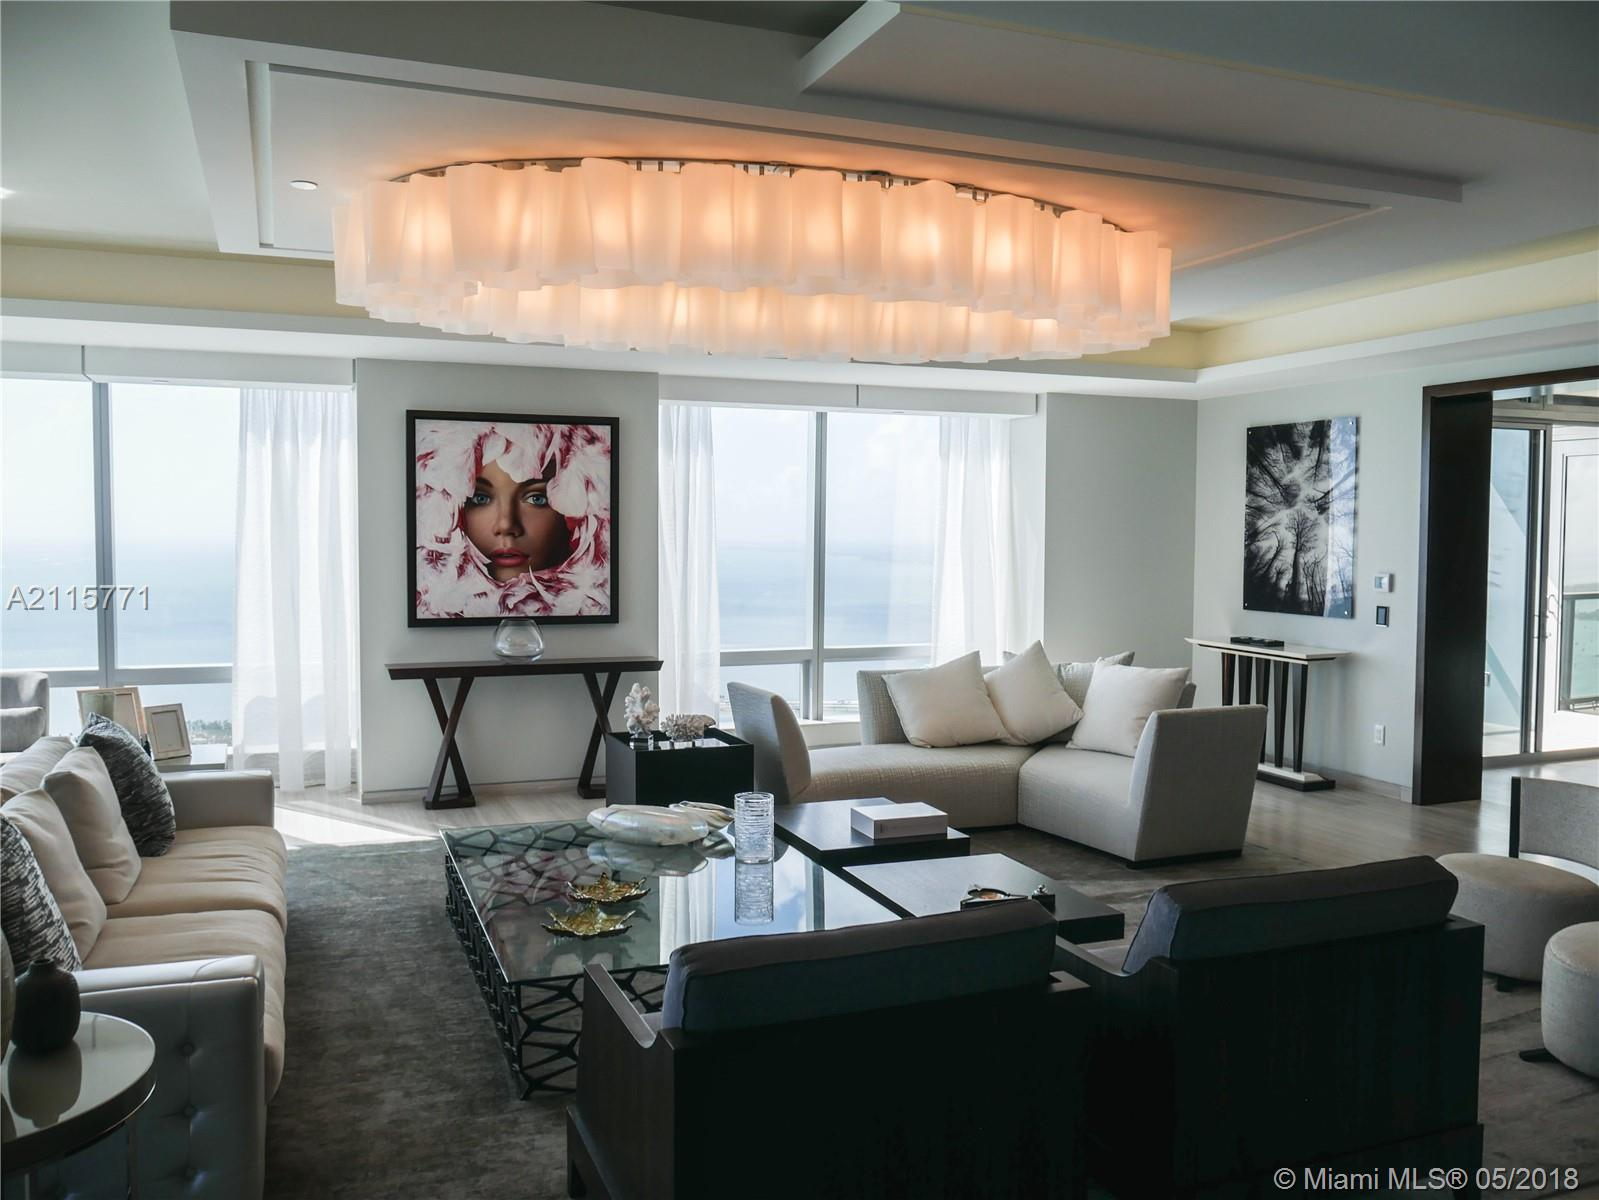 1425 Brickell ave-PH1 miami-fl-33131-a2115771-Pic08